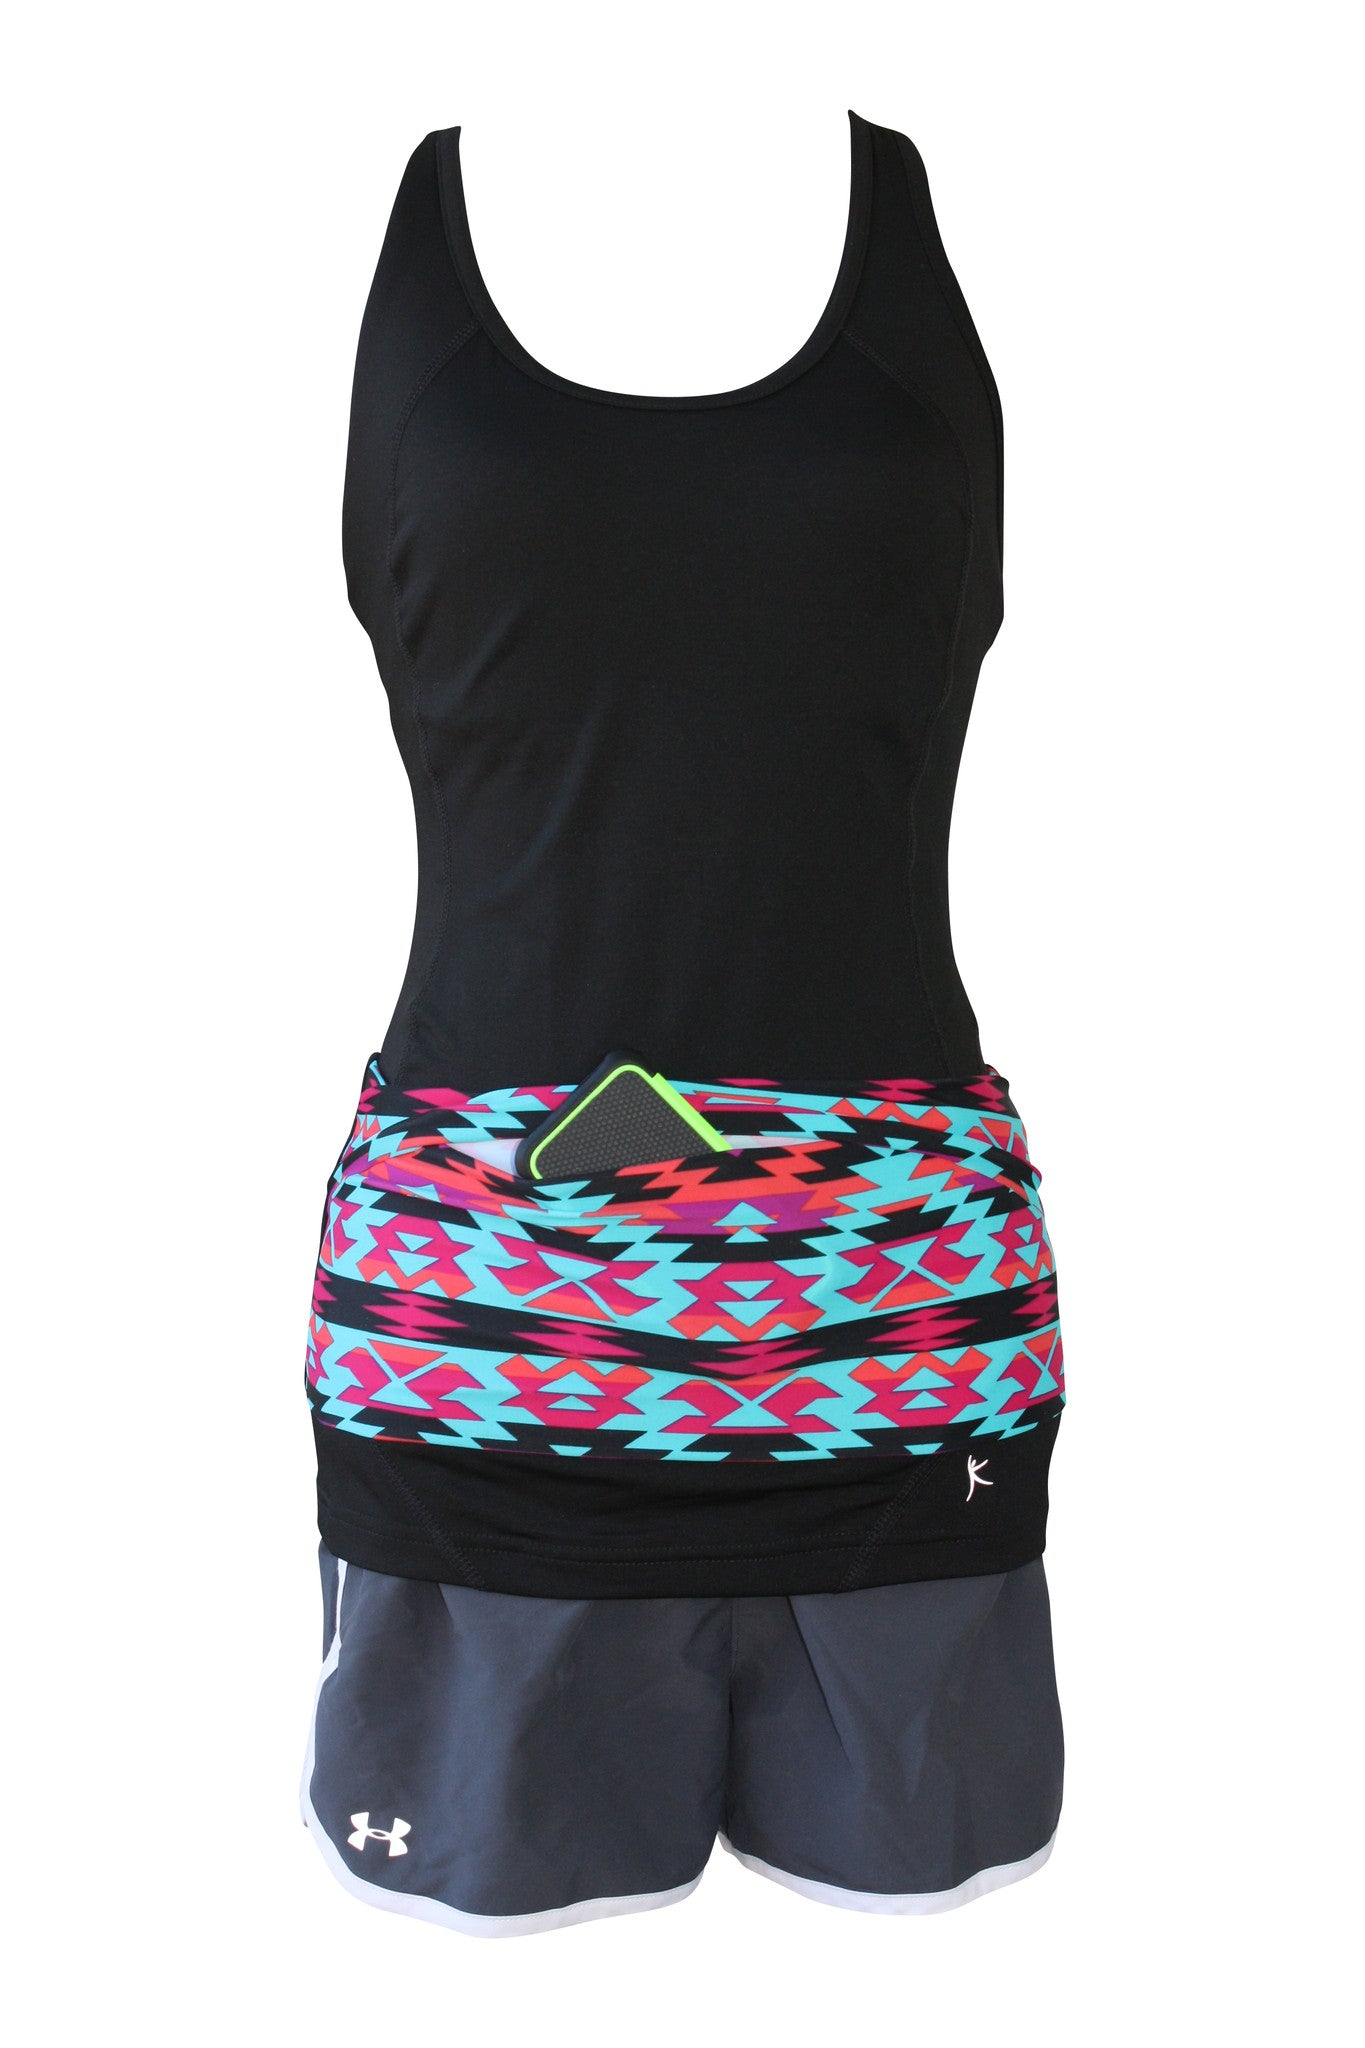 Aztec Running Belt - speedzter  - 2